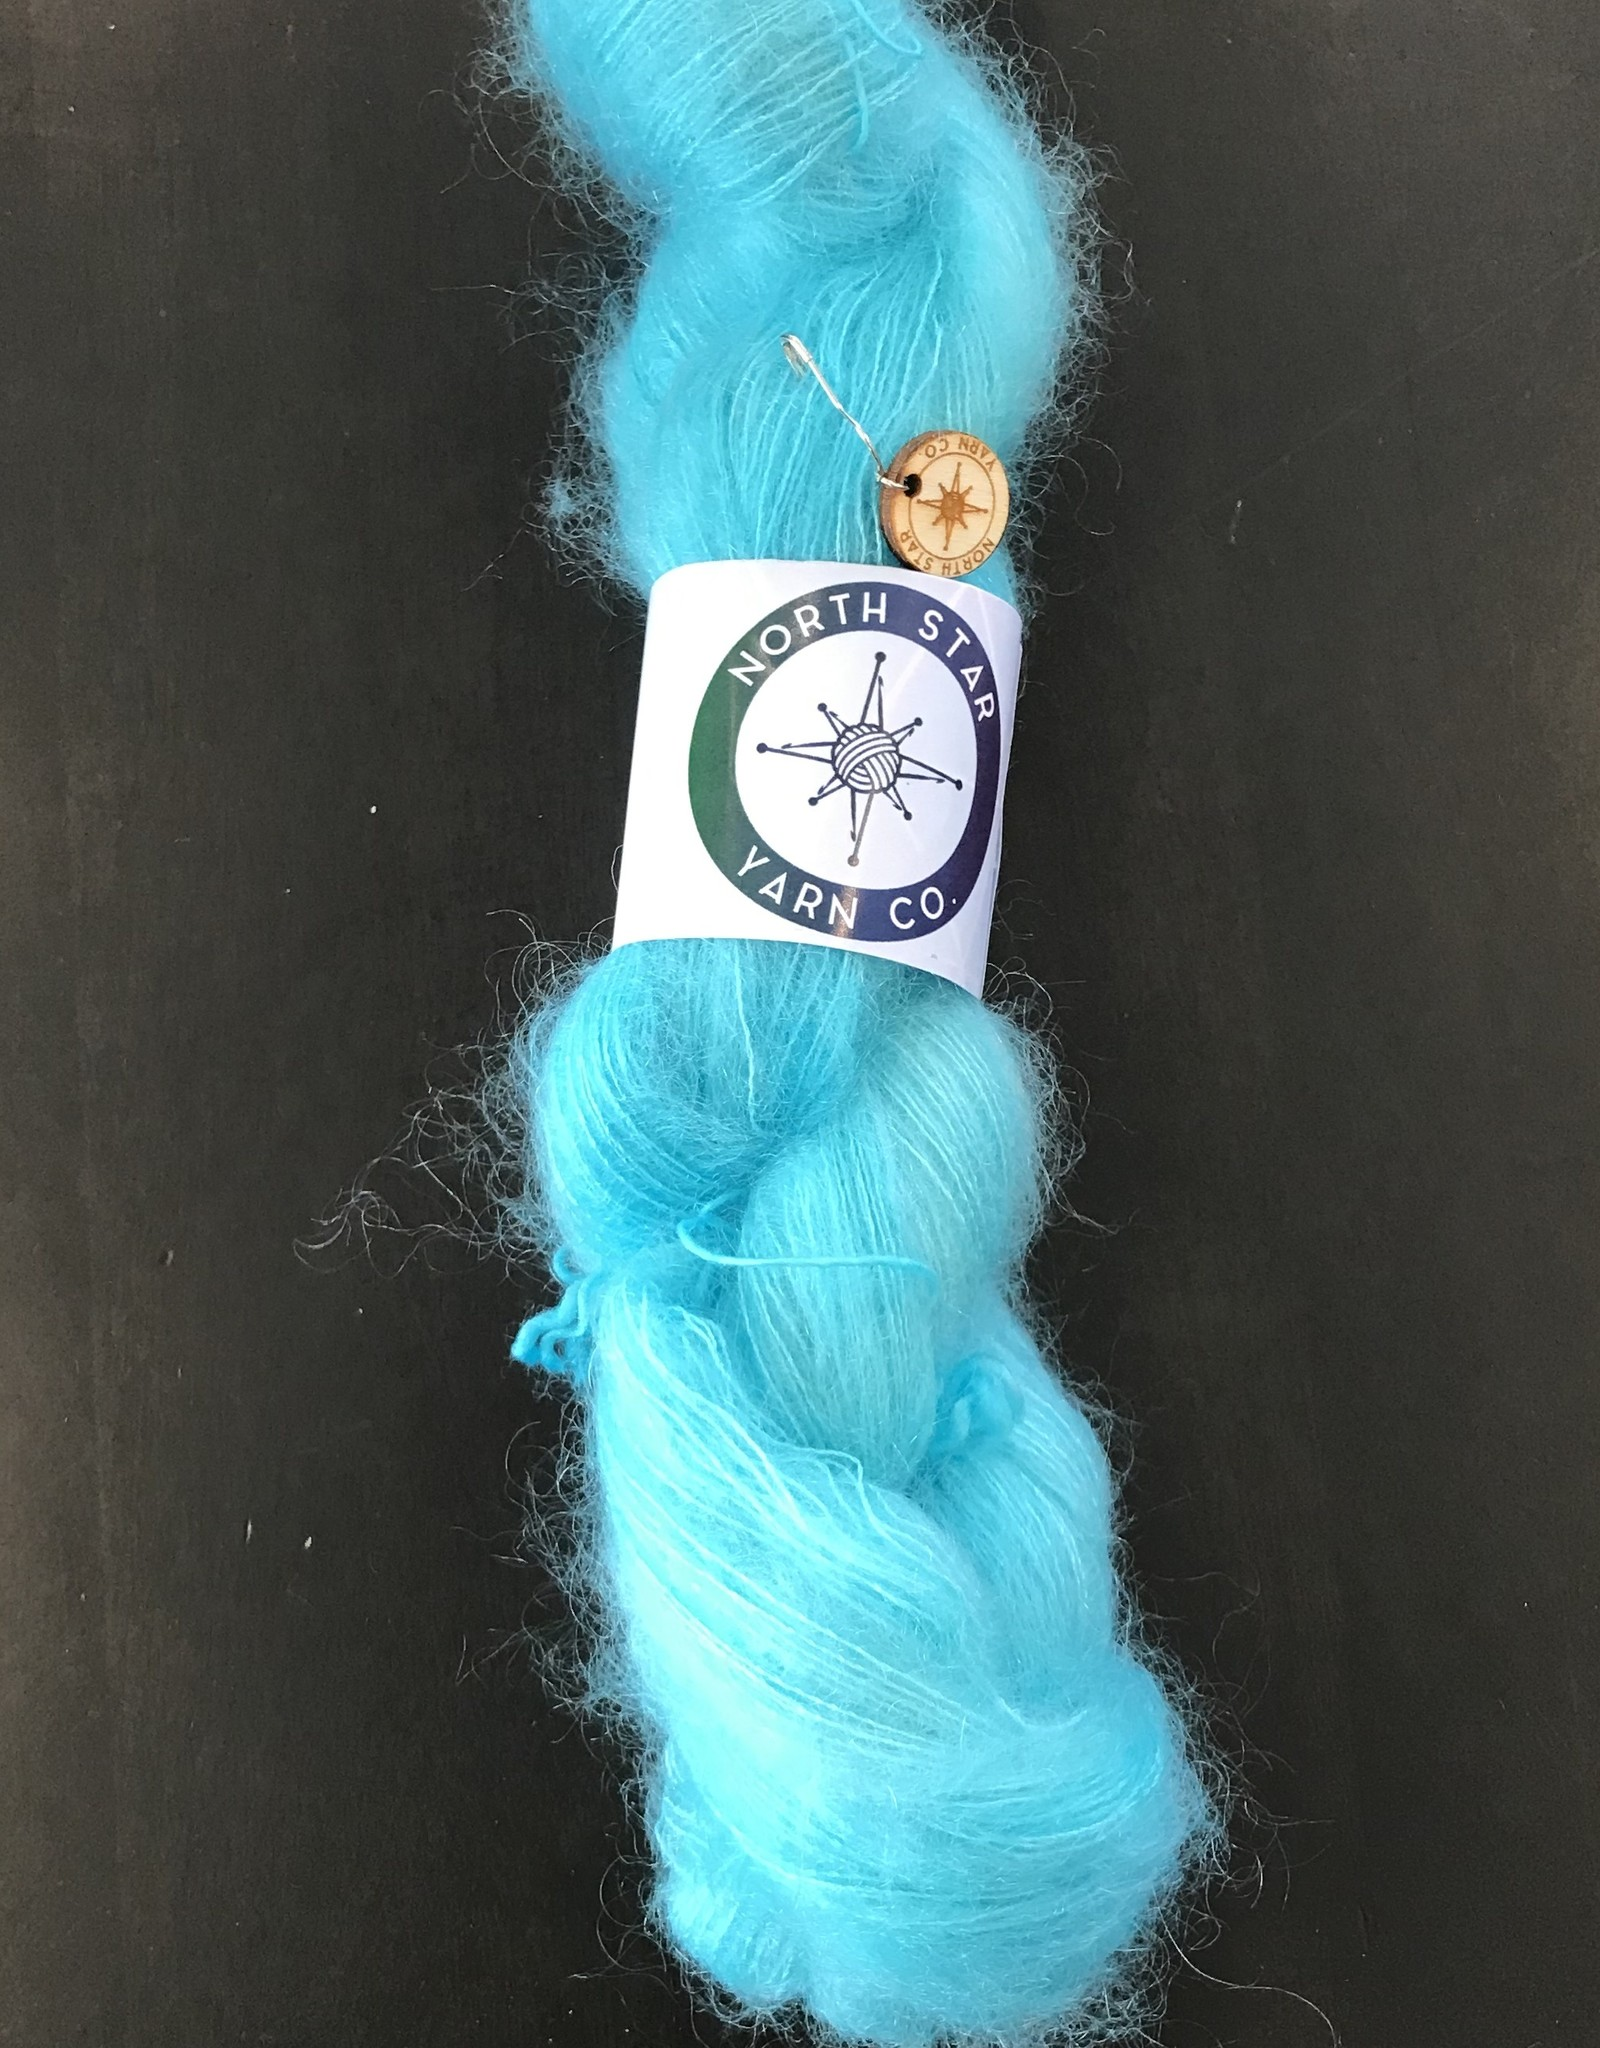 North Star Yarn Co. Radiance